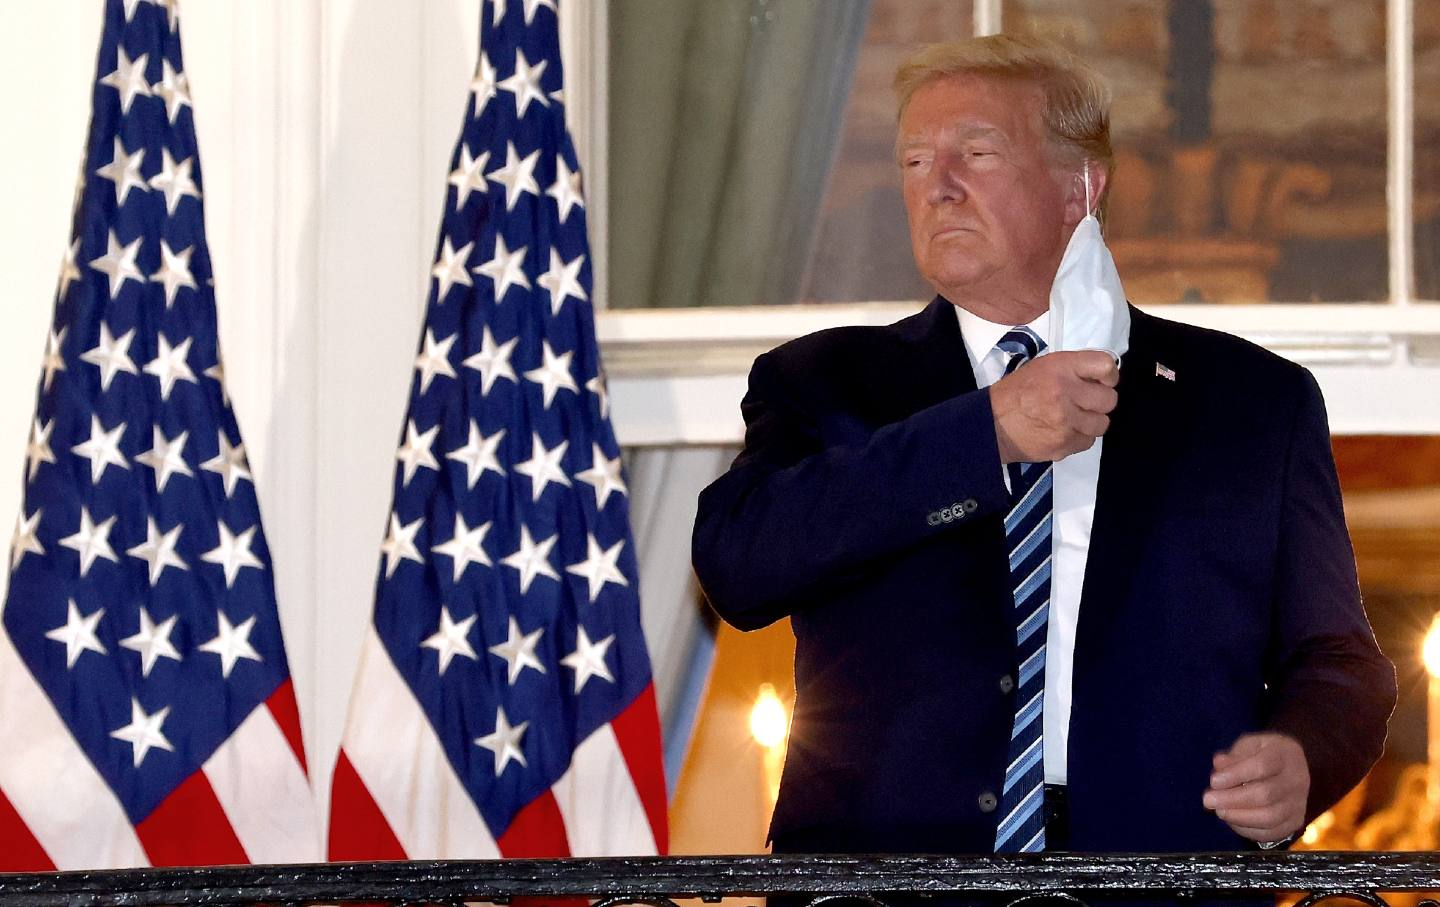 Standing on the White House balcony, Donald Trump removes his mask.